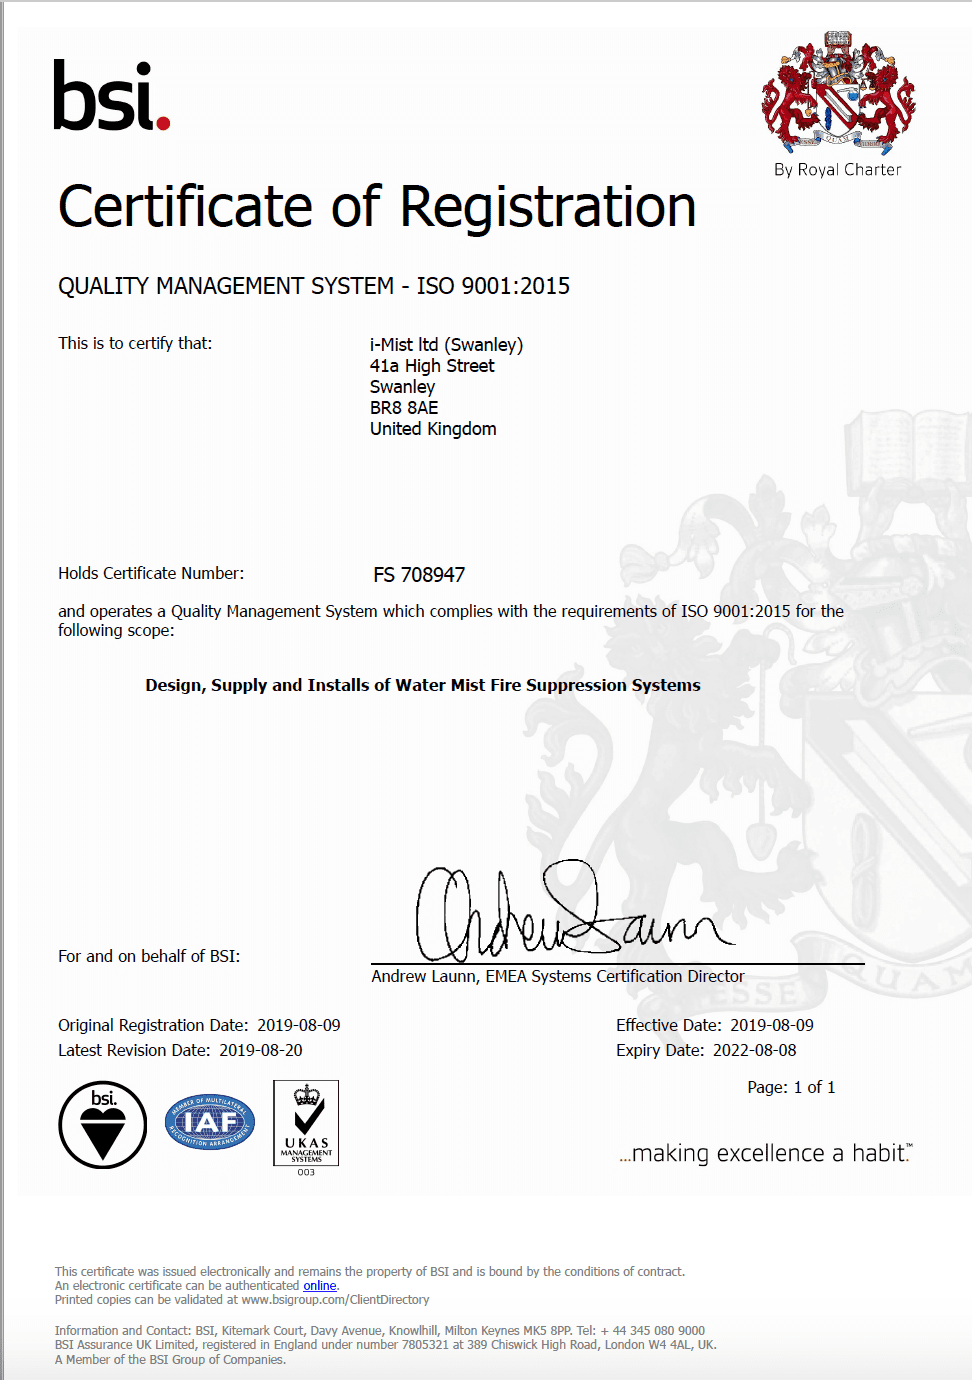 BSI certificate of registration that iMist was awarded